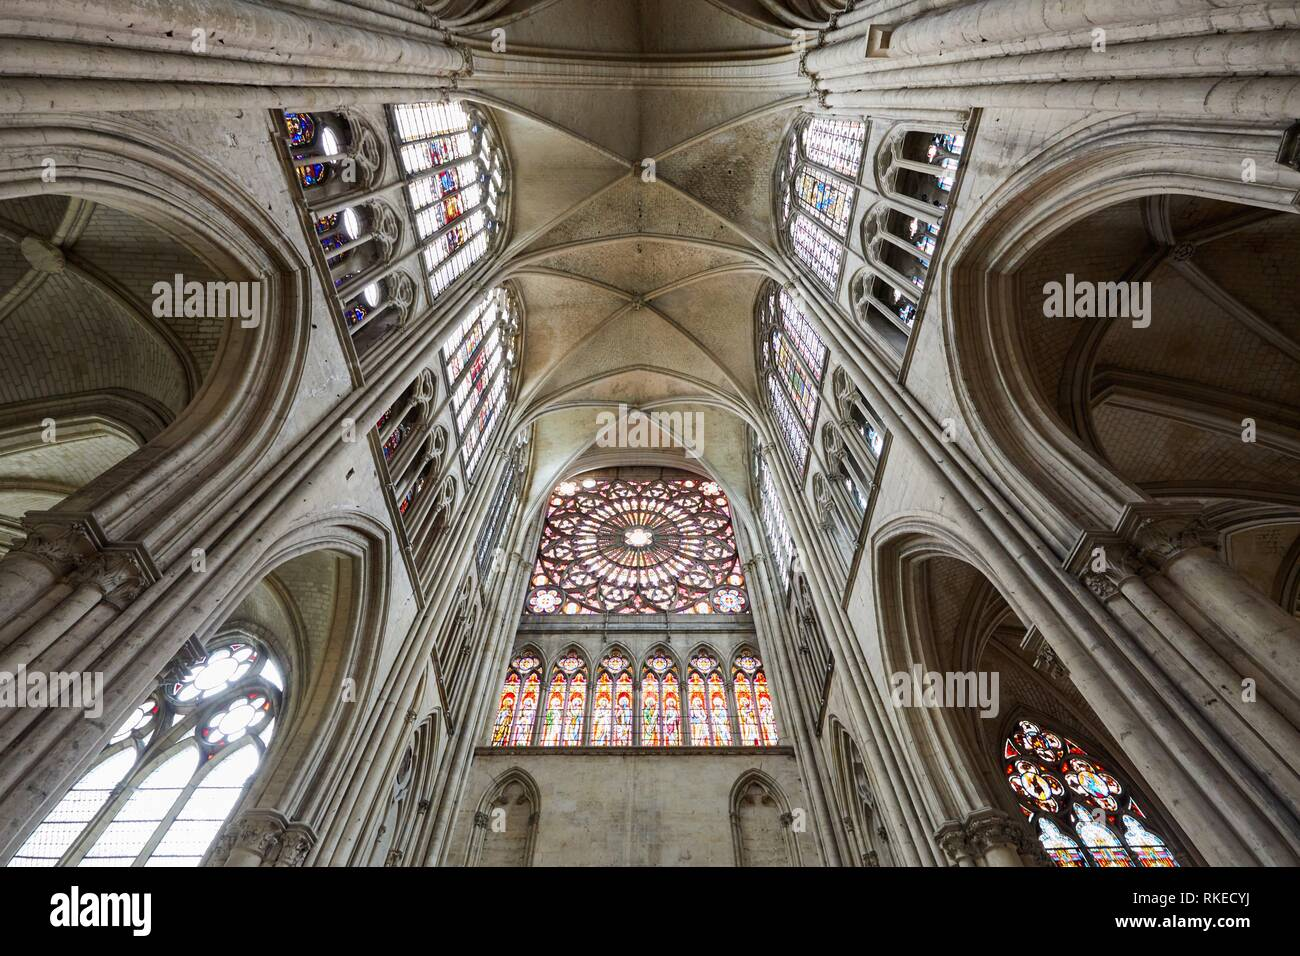 Cathedrale Saint-Pierre Saint-Paul, Troyes, Champagne-Ardenne Region, Aube Department, France, Europe - Stock Image